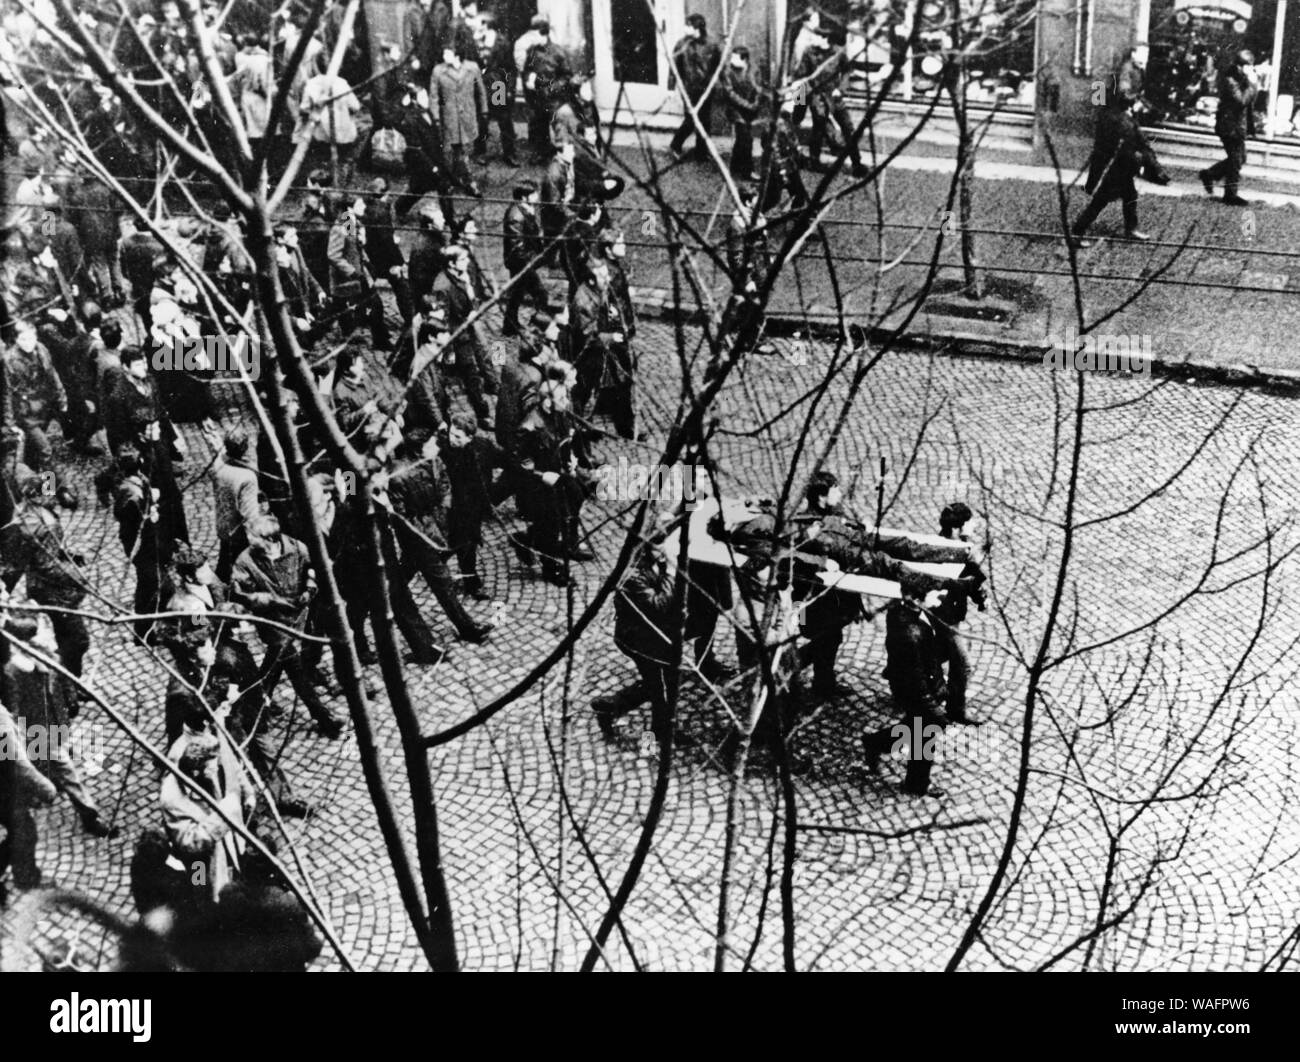 Gdynia, 17.12.1970. December protests on coast. Gdansk shipyard workers carry Zbigniew Godleski's body on doors. He was shot during riots in the Gdansk shipyard local train area. Photo taken on Swietojanska street in Gdynia, from the window of a private flat. Fot. Edmund Peplinski / FORUM Stock Photo